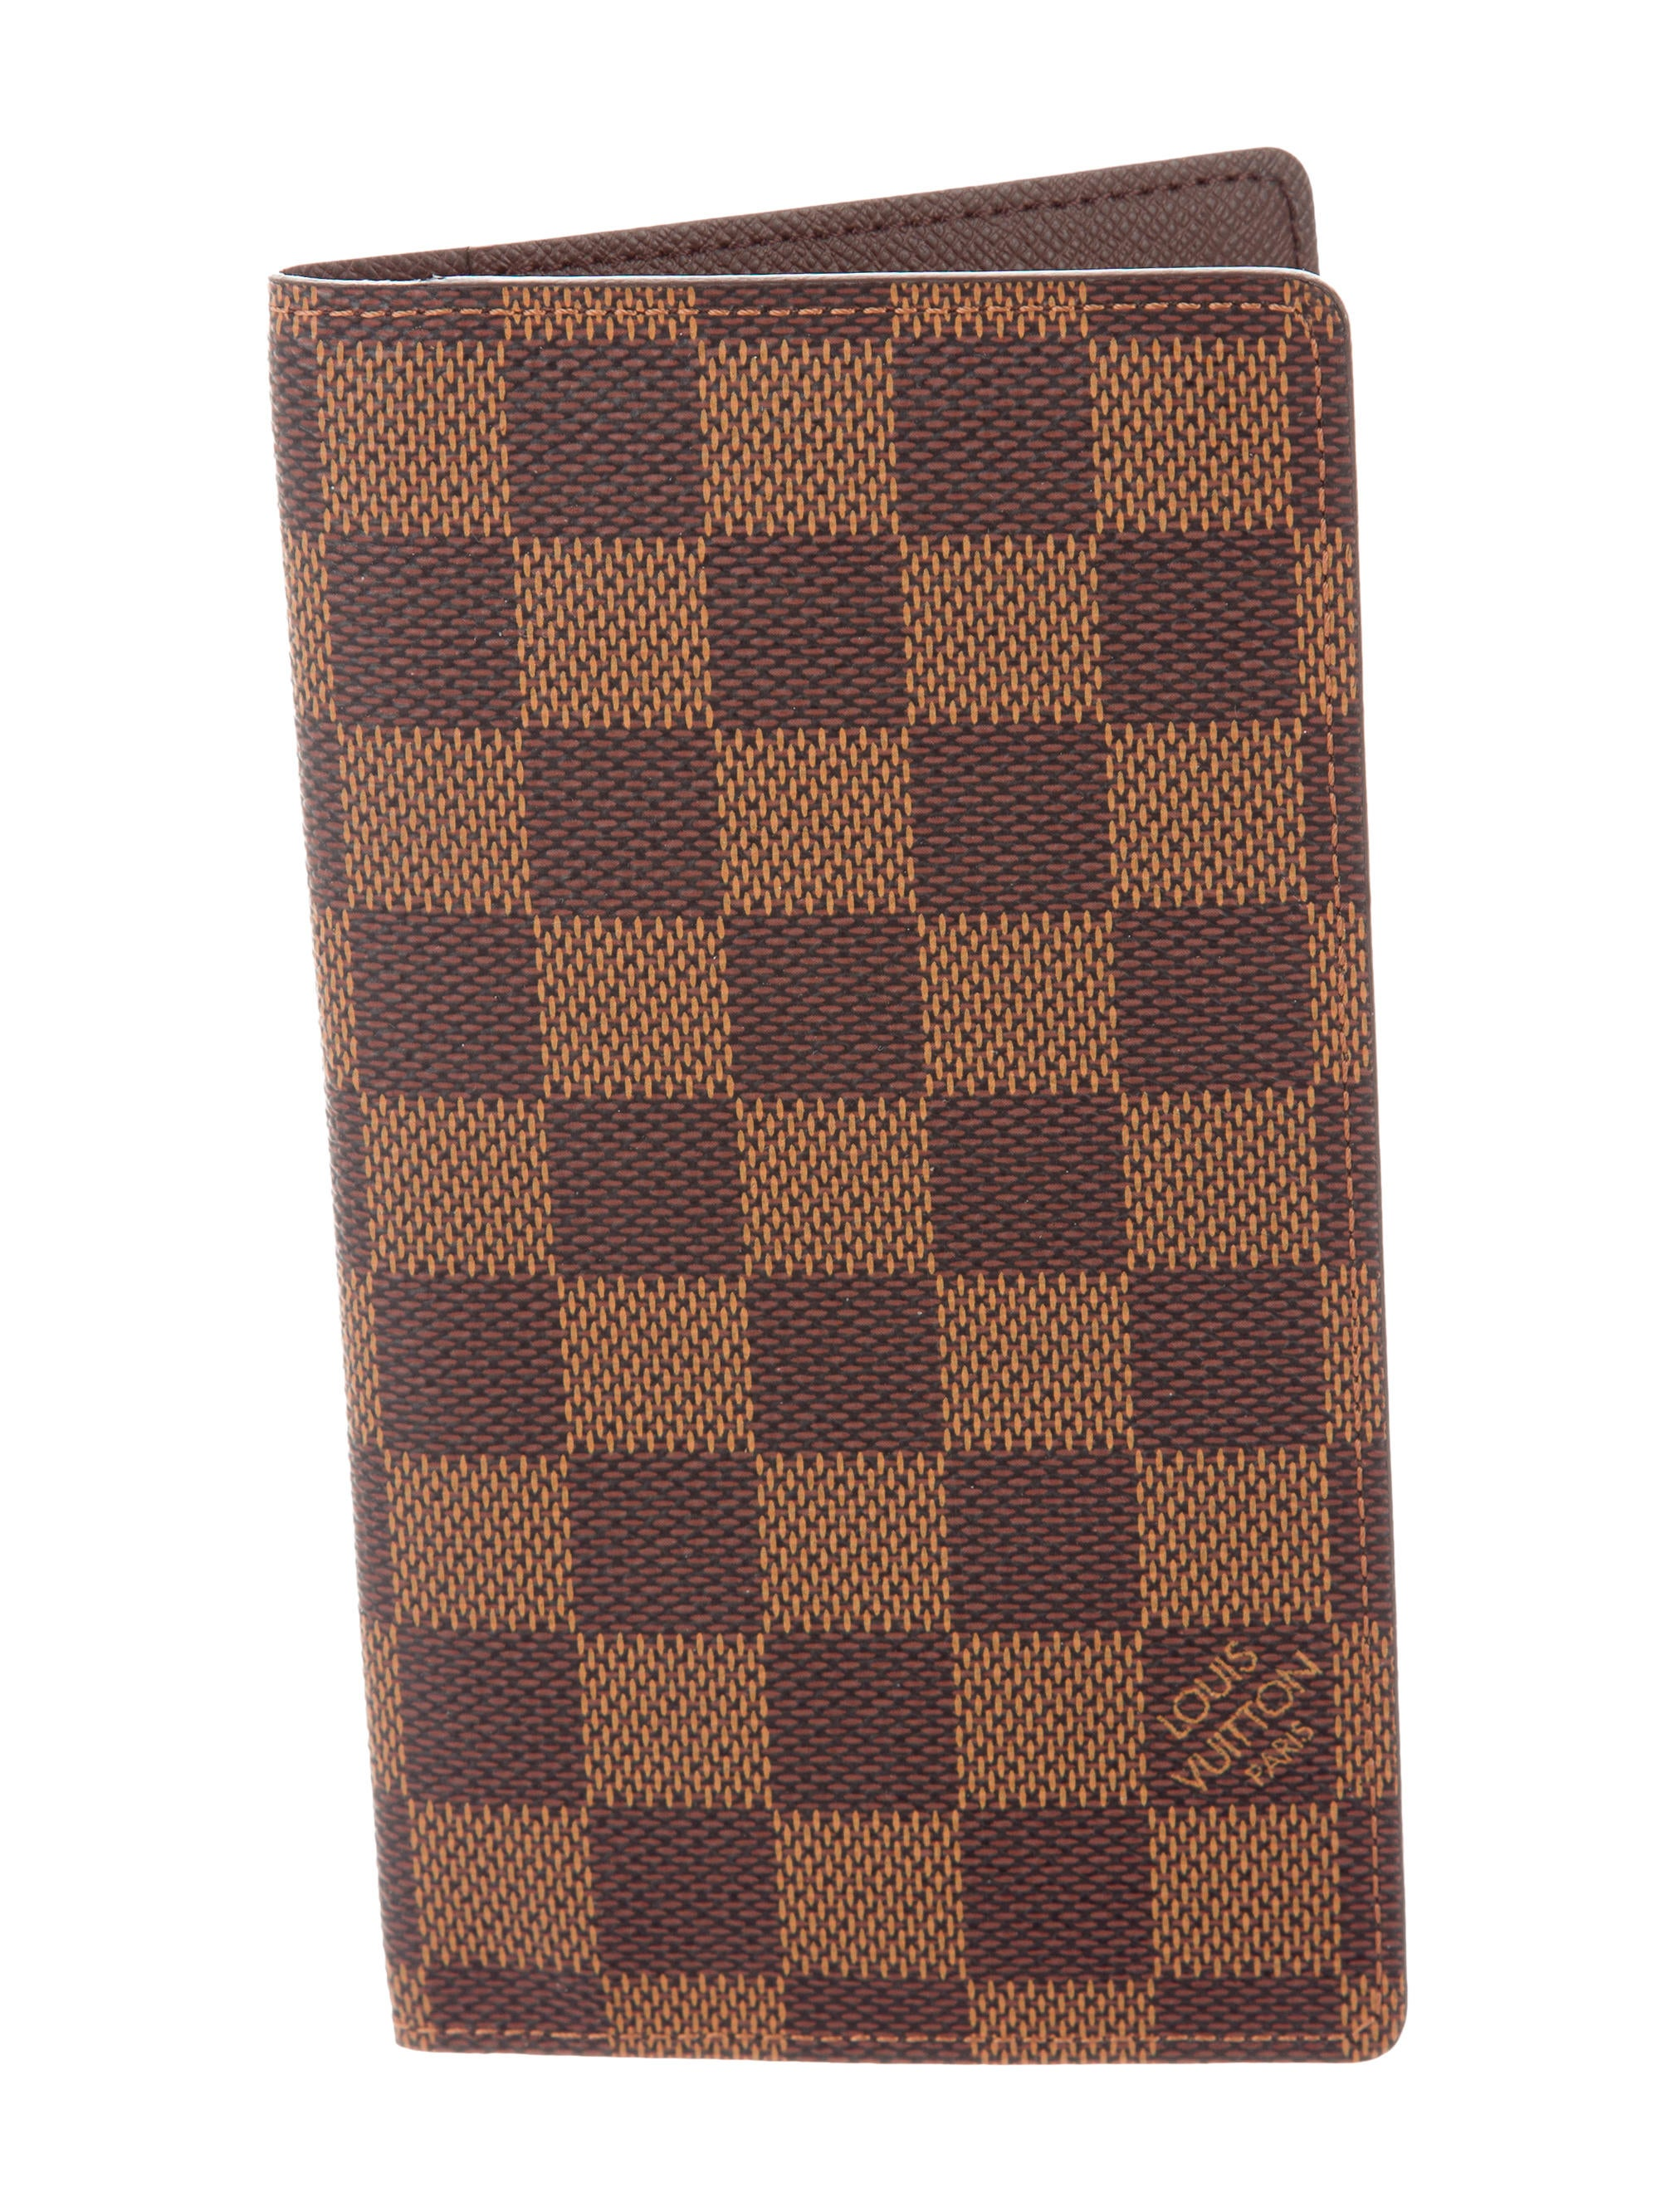 louis vuitton damier vertical wallet accessories lou117110 the realreal. Black Bedroom Furniture Sets. Home Design Ideas